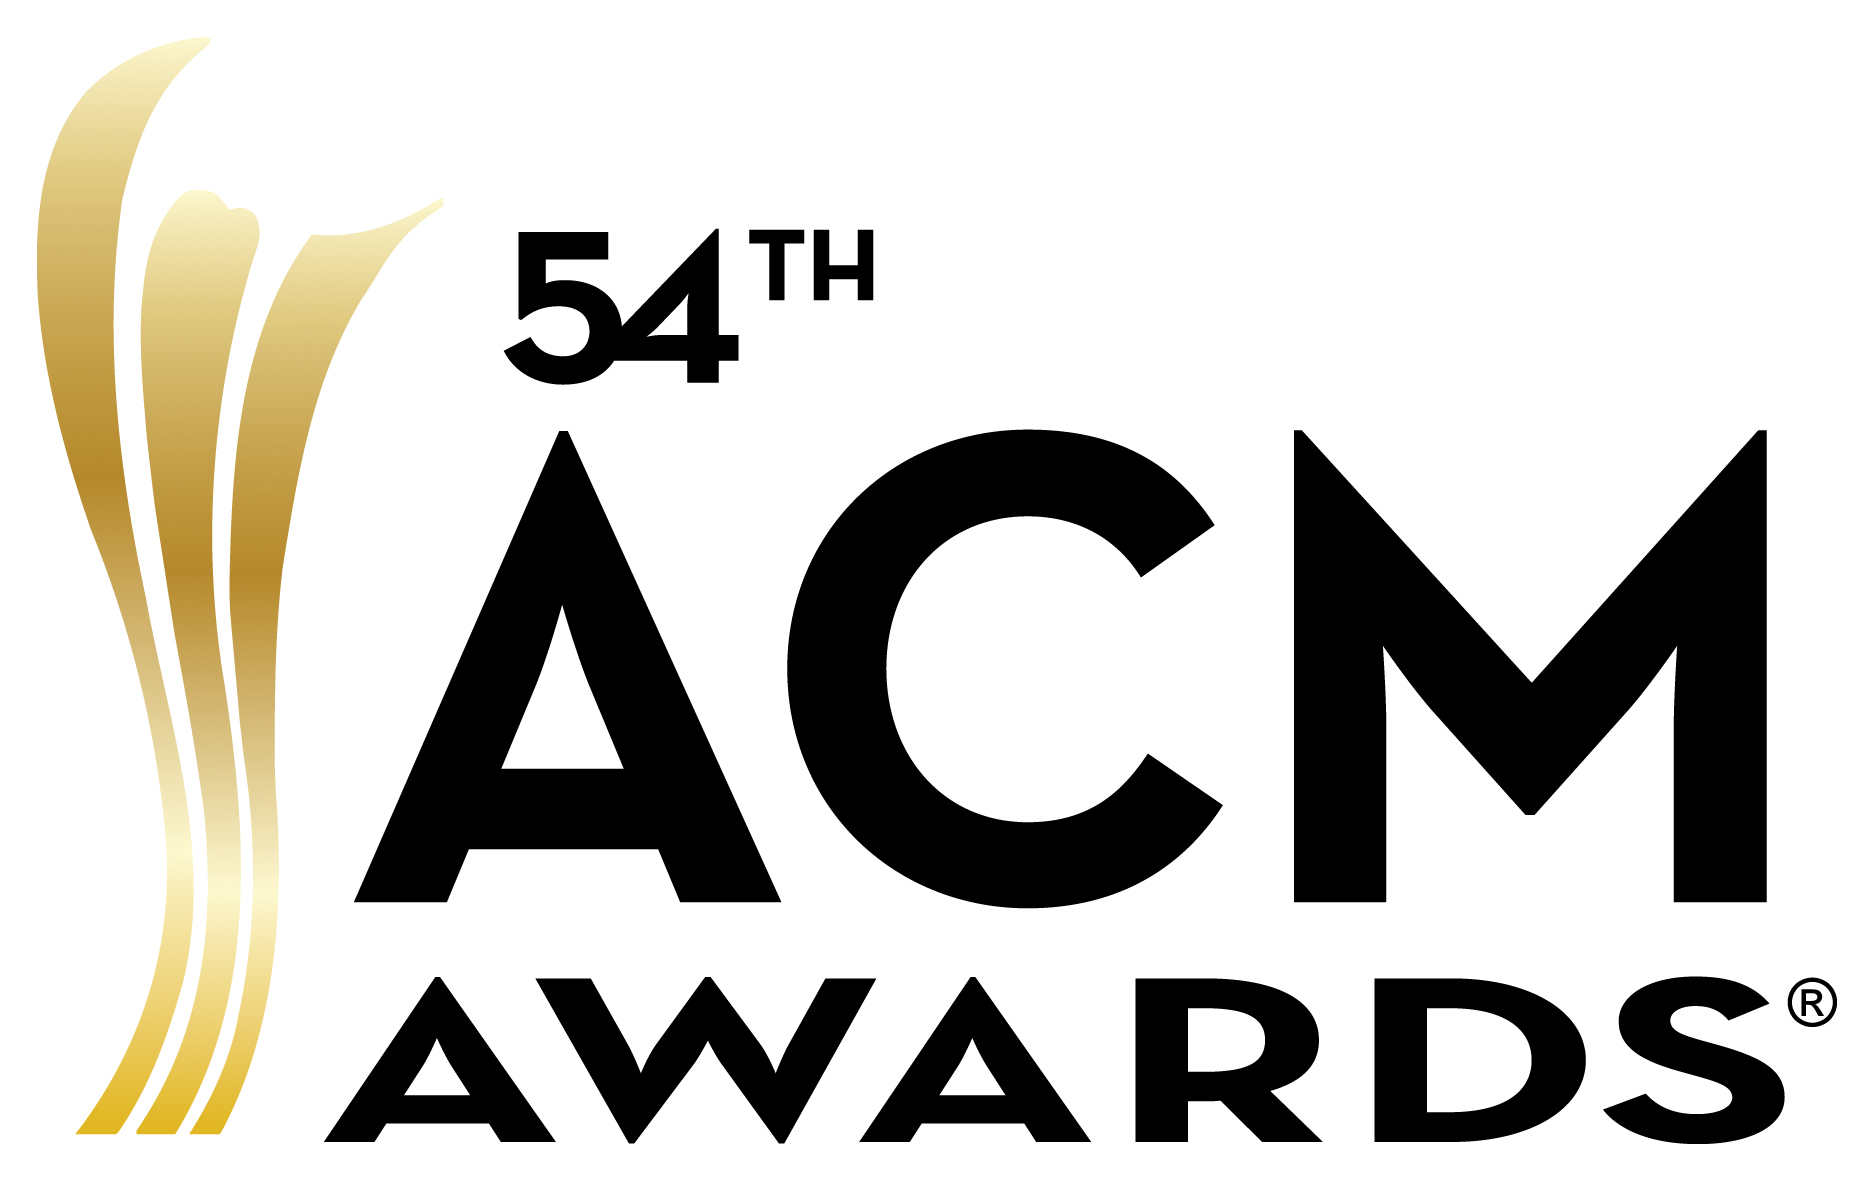 DIERKS BENTLEY AND ERIC CHURCH ADDED TO THE LIST OF PERFORMERS AT THE ACM AWARDS.